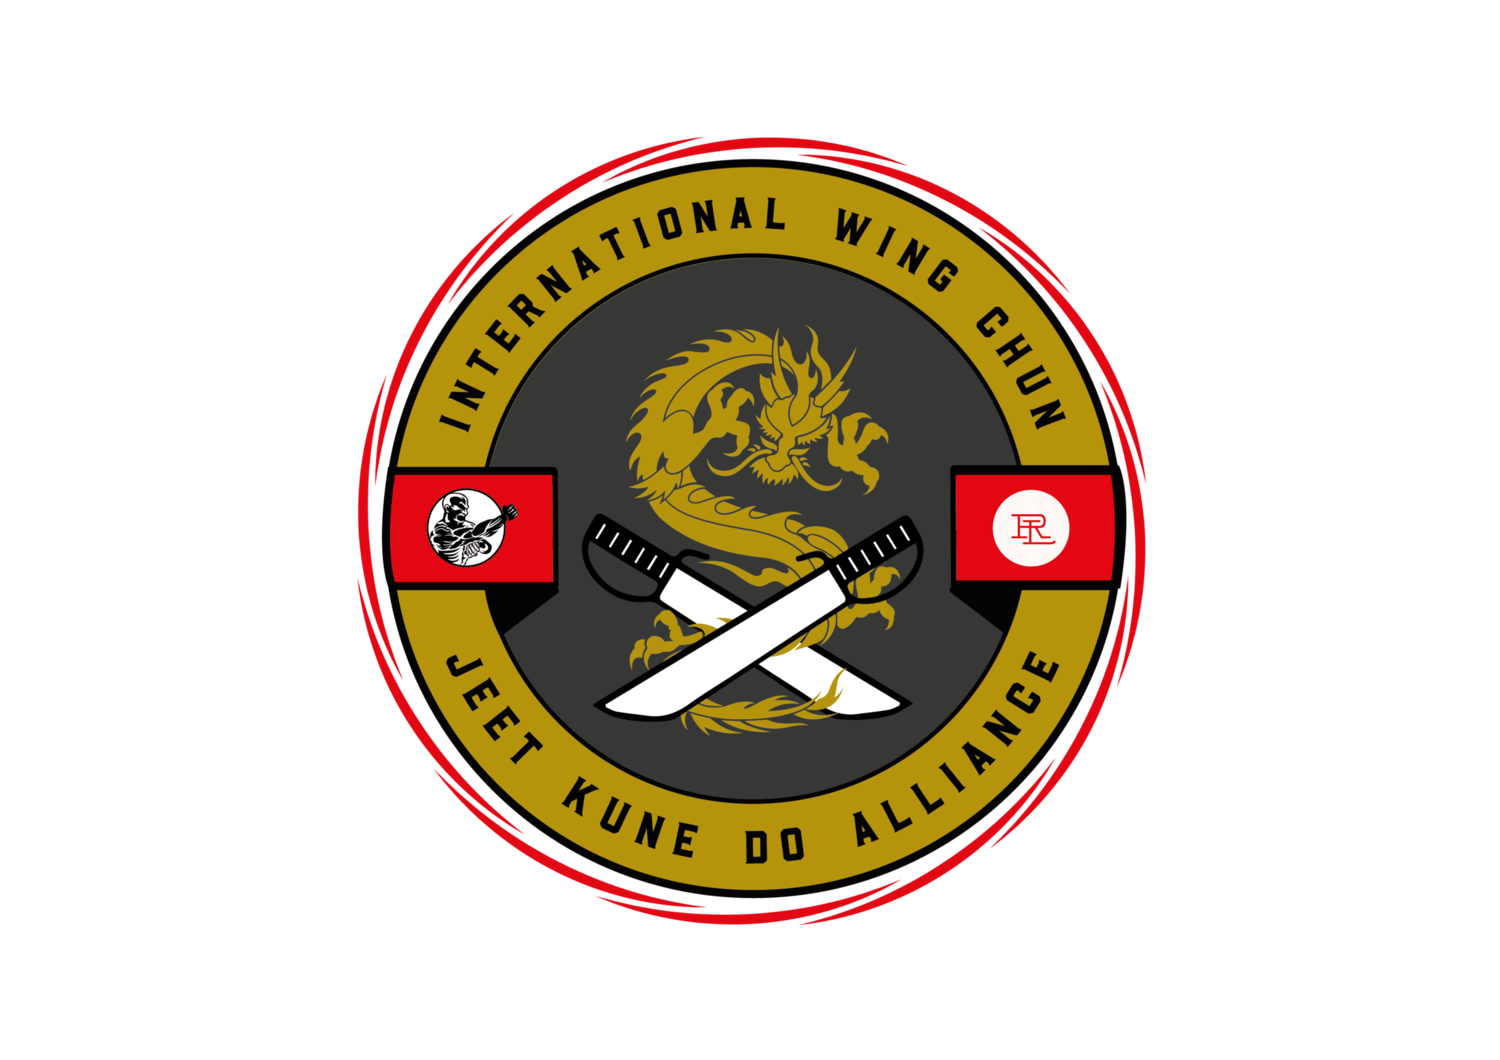 THE INTERNATIONAL WING CHUN / JEET KUNE DO ALLIANCE